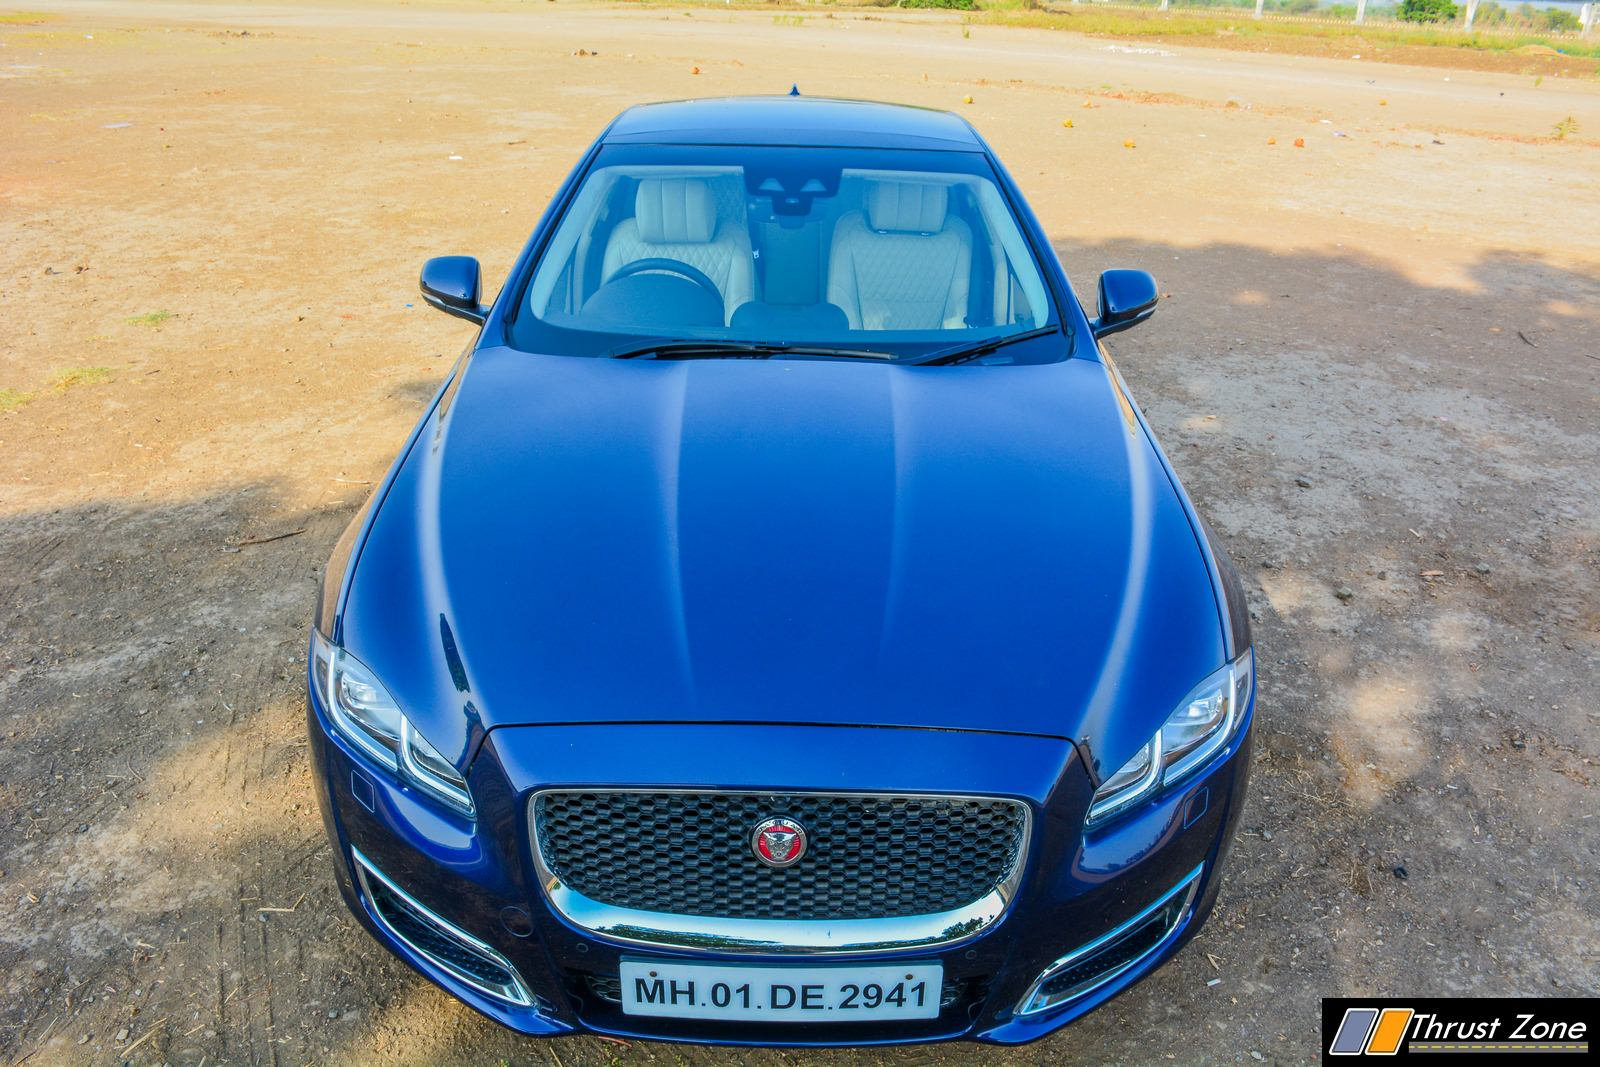 https://www.thrustzone.com/wp-content/uploads/2019/05/2019-Jaguar-XJ-50-Diesel-V6-Review-21.jpg